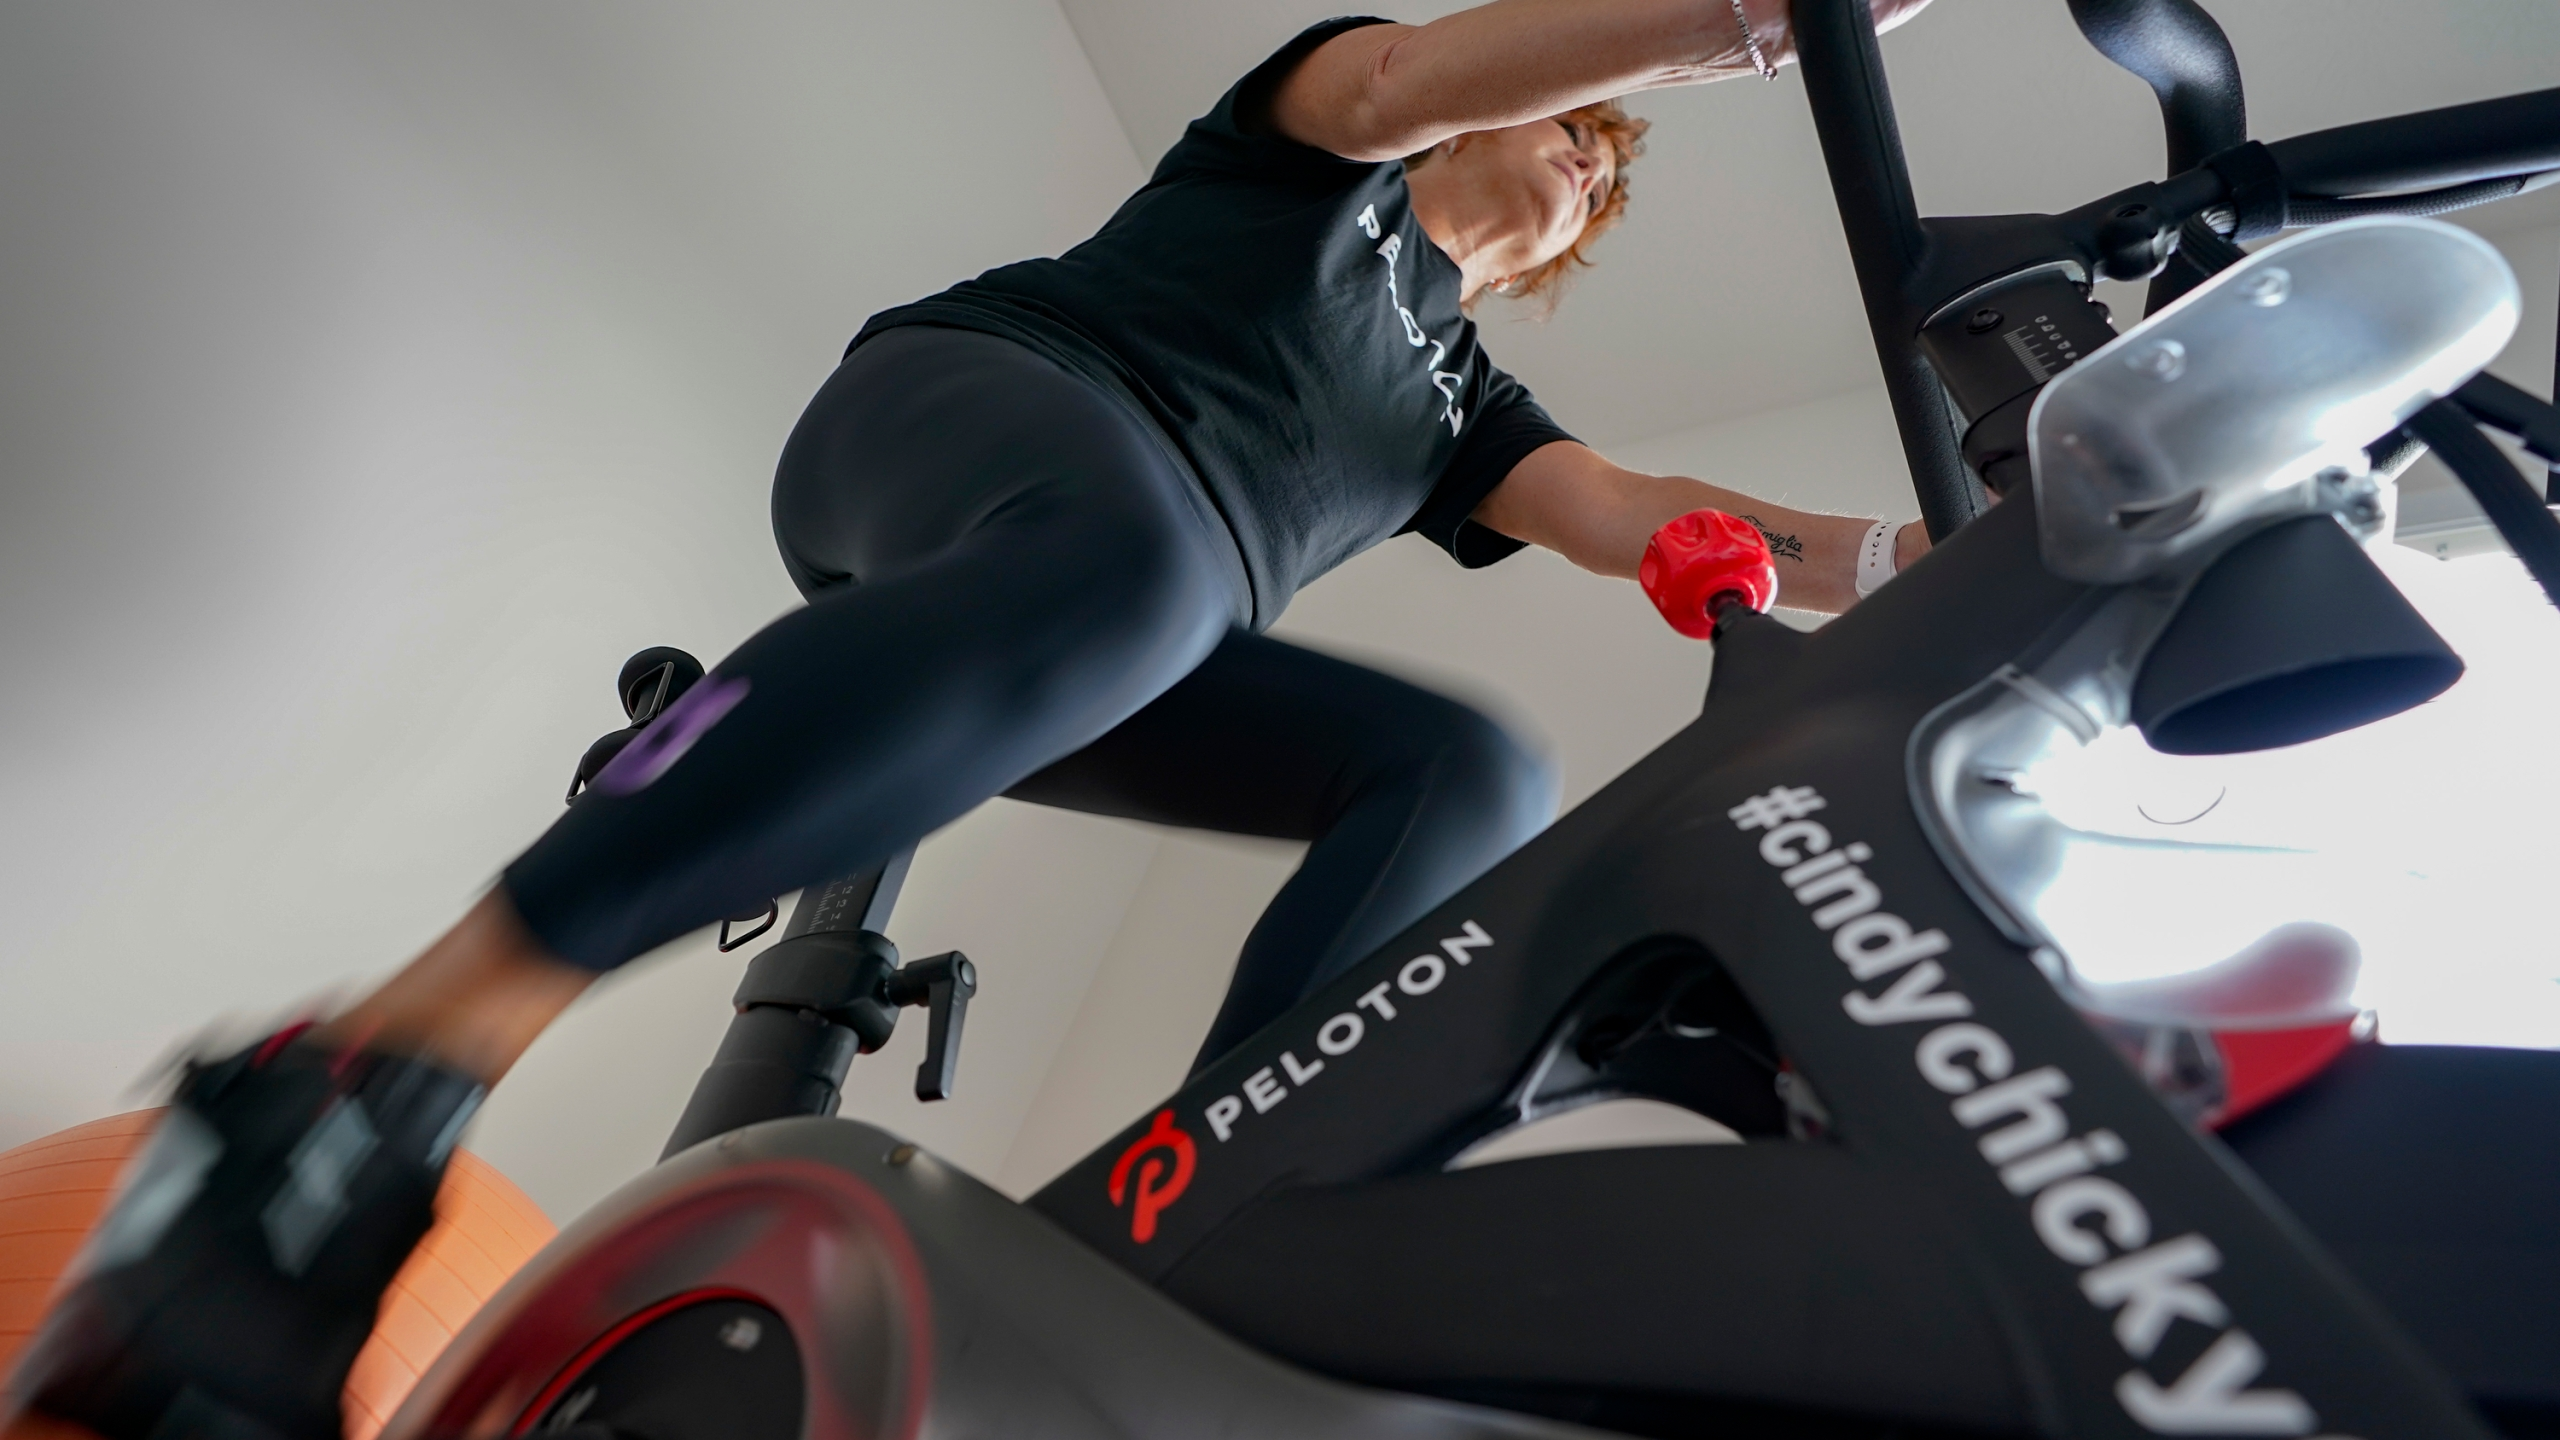 In this photo made on Sunday, Aug. 8, 2021, Cindy Cicchinelli uses her Peloton exercise machine in the workout room of her Pittsburgh townhouse. Cicchinelli says she has become a dedicated Peloton user after going to her gym in Pittsburgh for years, she said the convenience is what has sold her. The pandemic is reshaping America's fitness industry and ushering in a new era of home workouts and virtual classes. High-end exercise equipment maker Peloton is breaking ground Monday, Aug. 9, 2021, on its first U.S. factory in Ohio. (AP Photo/Keith Srakocic)